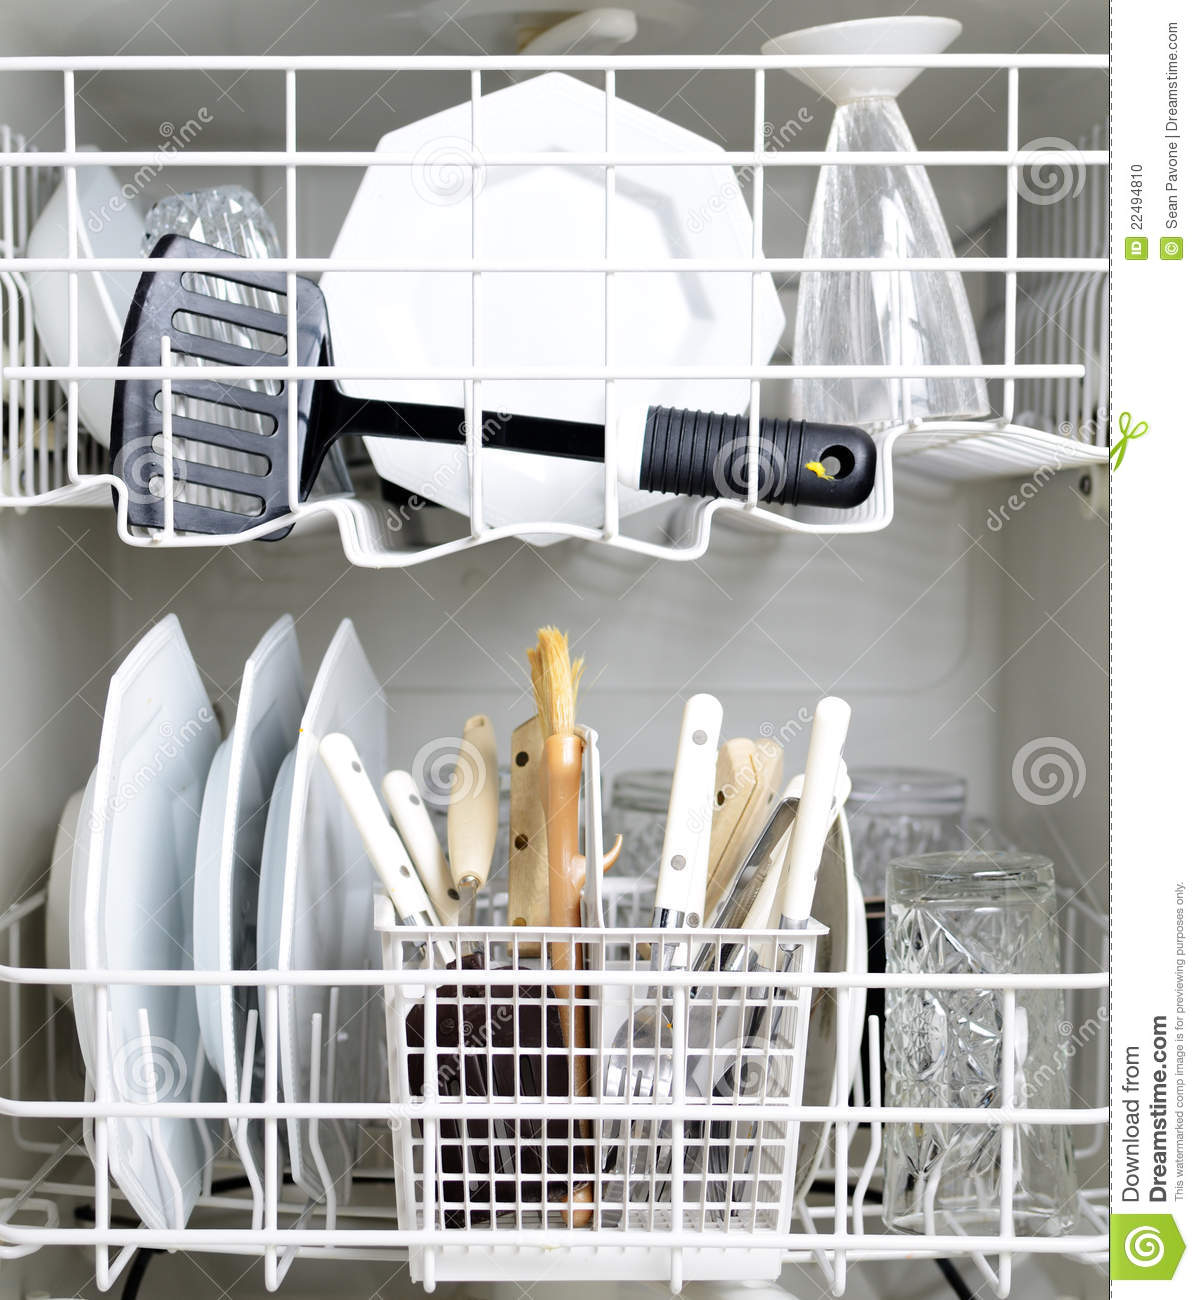 Dishwasher And Dirty Dishes Stock Photo - Image: 22494810